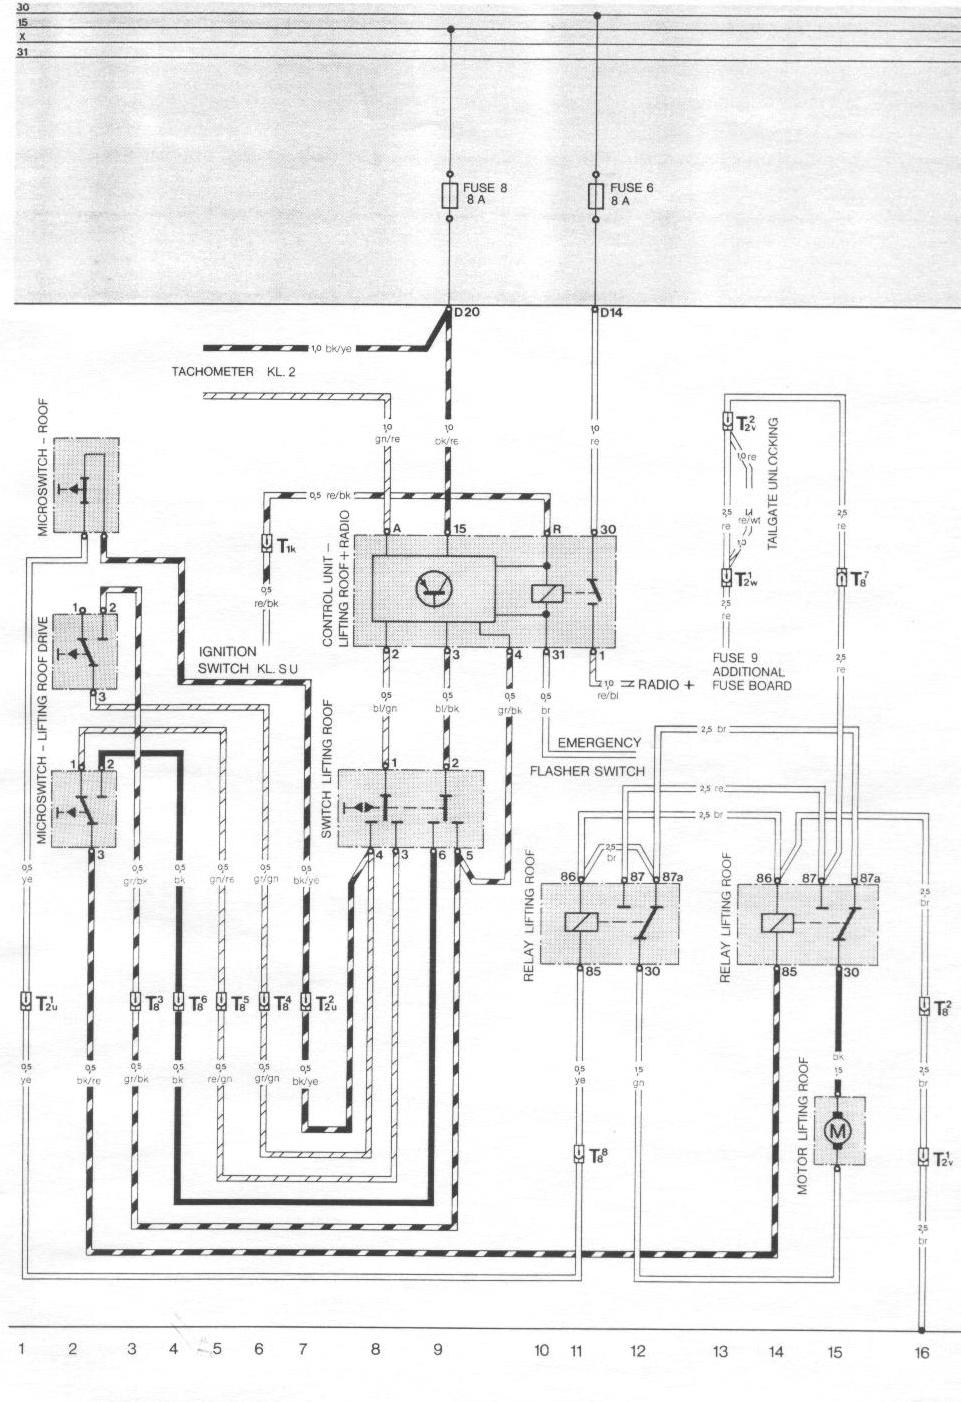 1992 Porsche 911 Dme Wiring Diagram Auto Electrical Related With